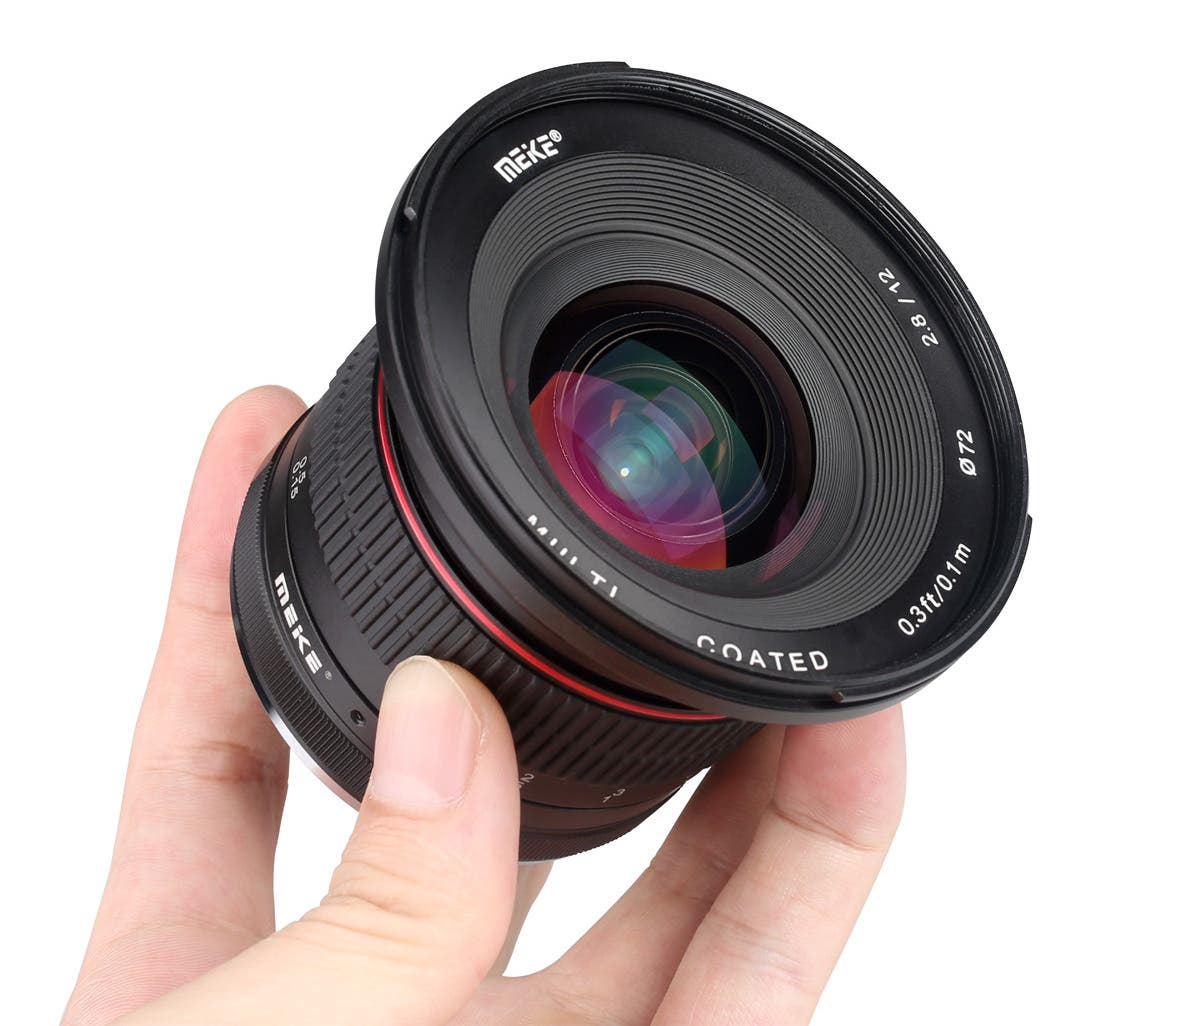 Meike Introduces 12mm f2.8 and 8mm f3.5 Fisheye Lenses For Mirrorless Systems